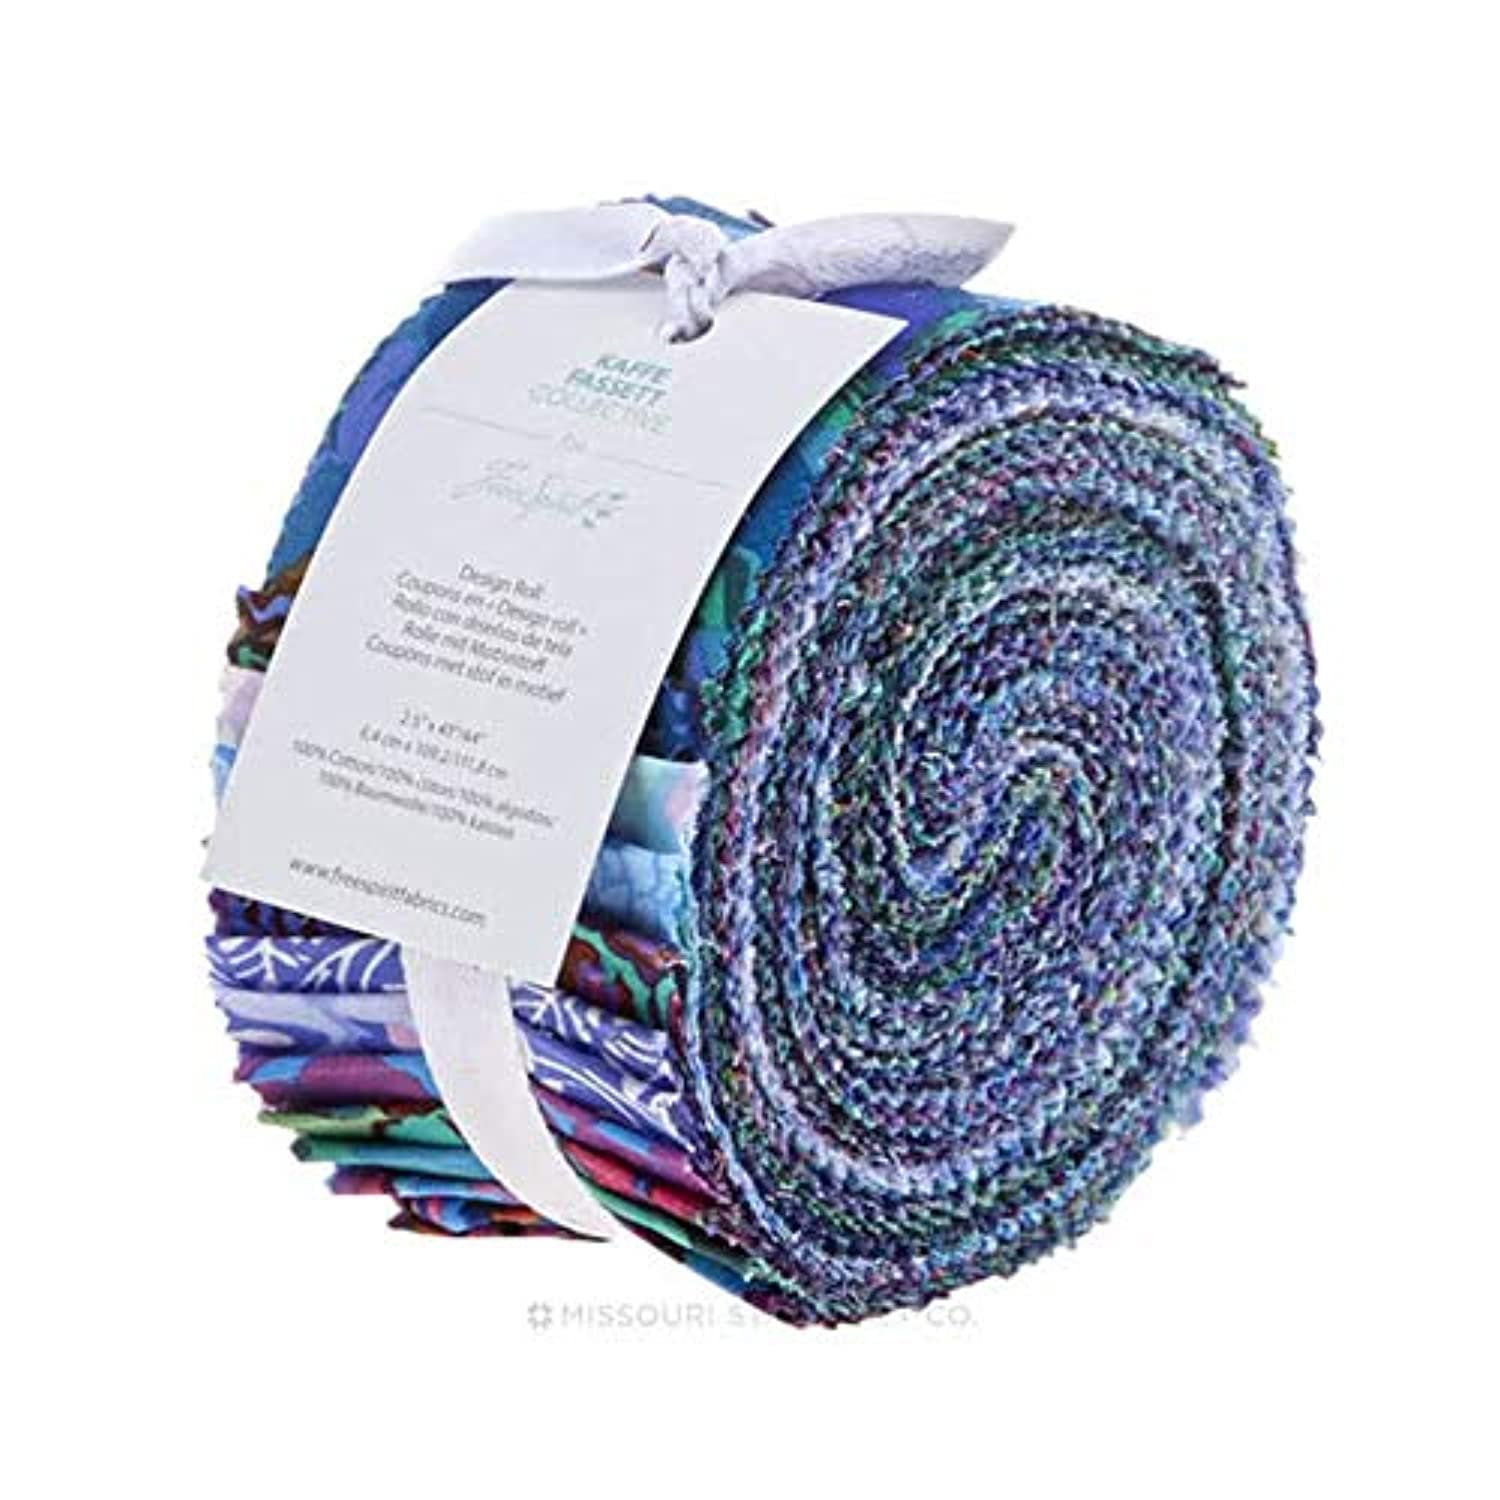 Free Spirit Fabrics Kaffe Fassett Collective Peacock Design Roll with 40 Strips 2.5 by 44